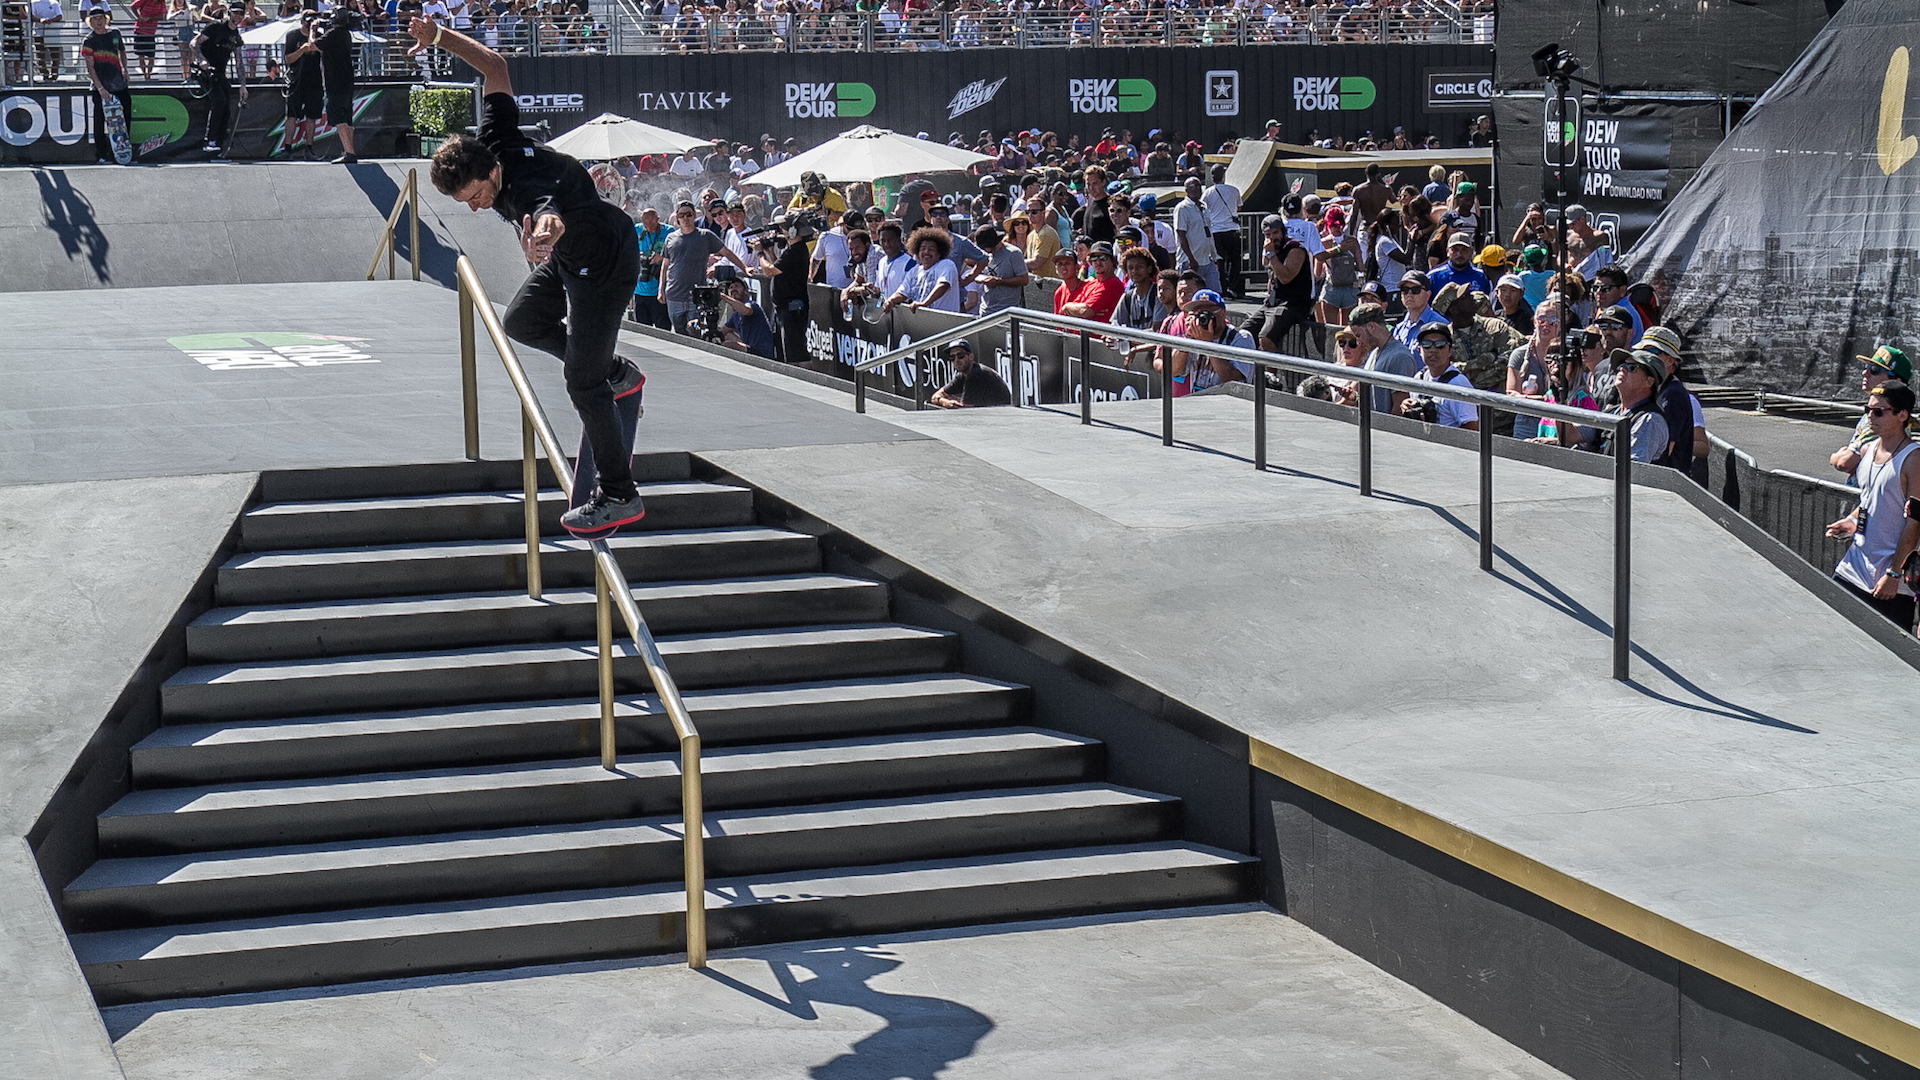 Micky Papa locked into a picture perfect backside overcrook and ultimately earned the highest score in the rails section. Photo: Durso